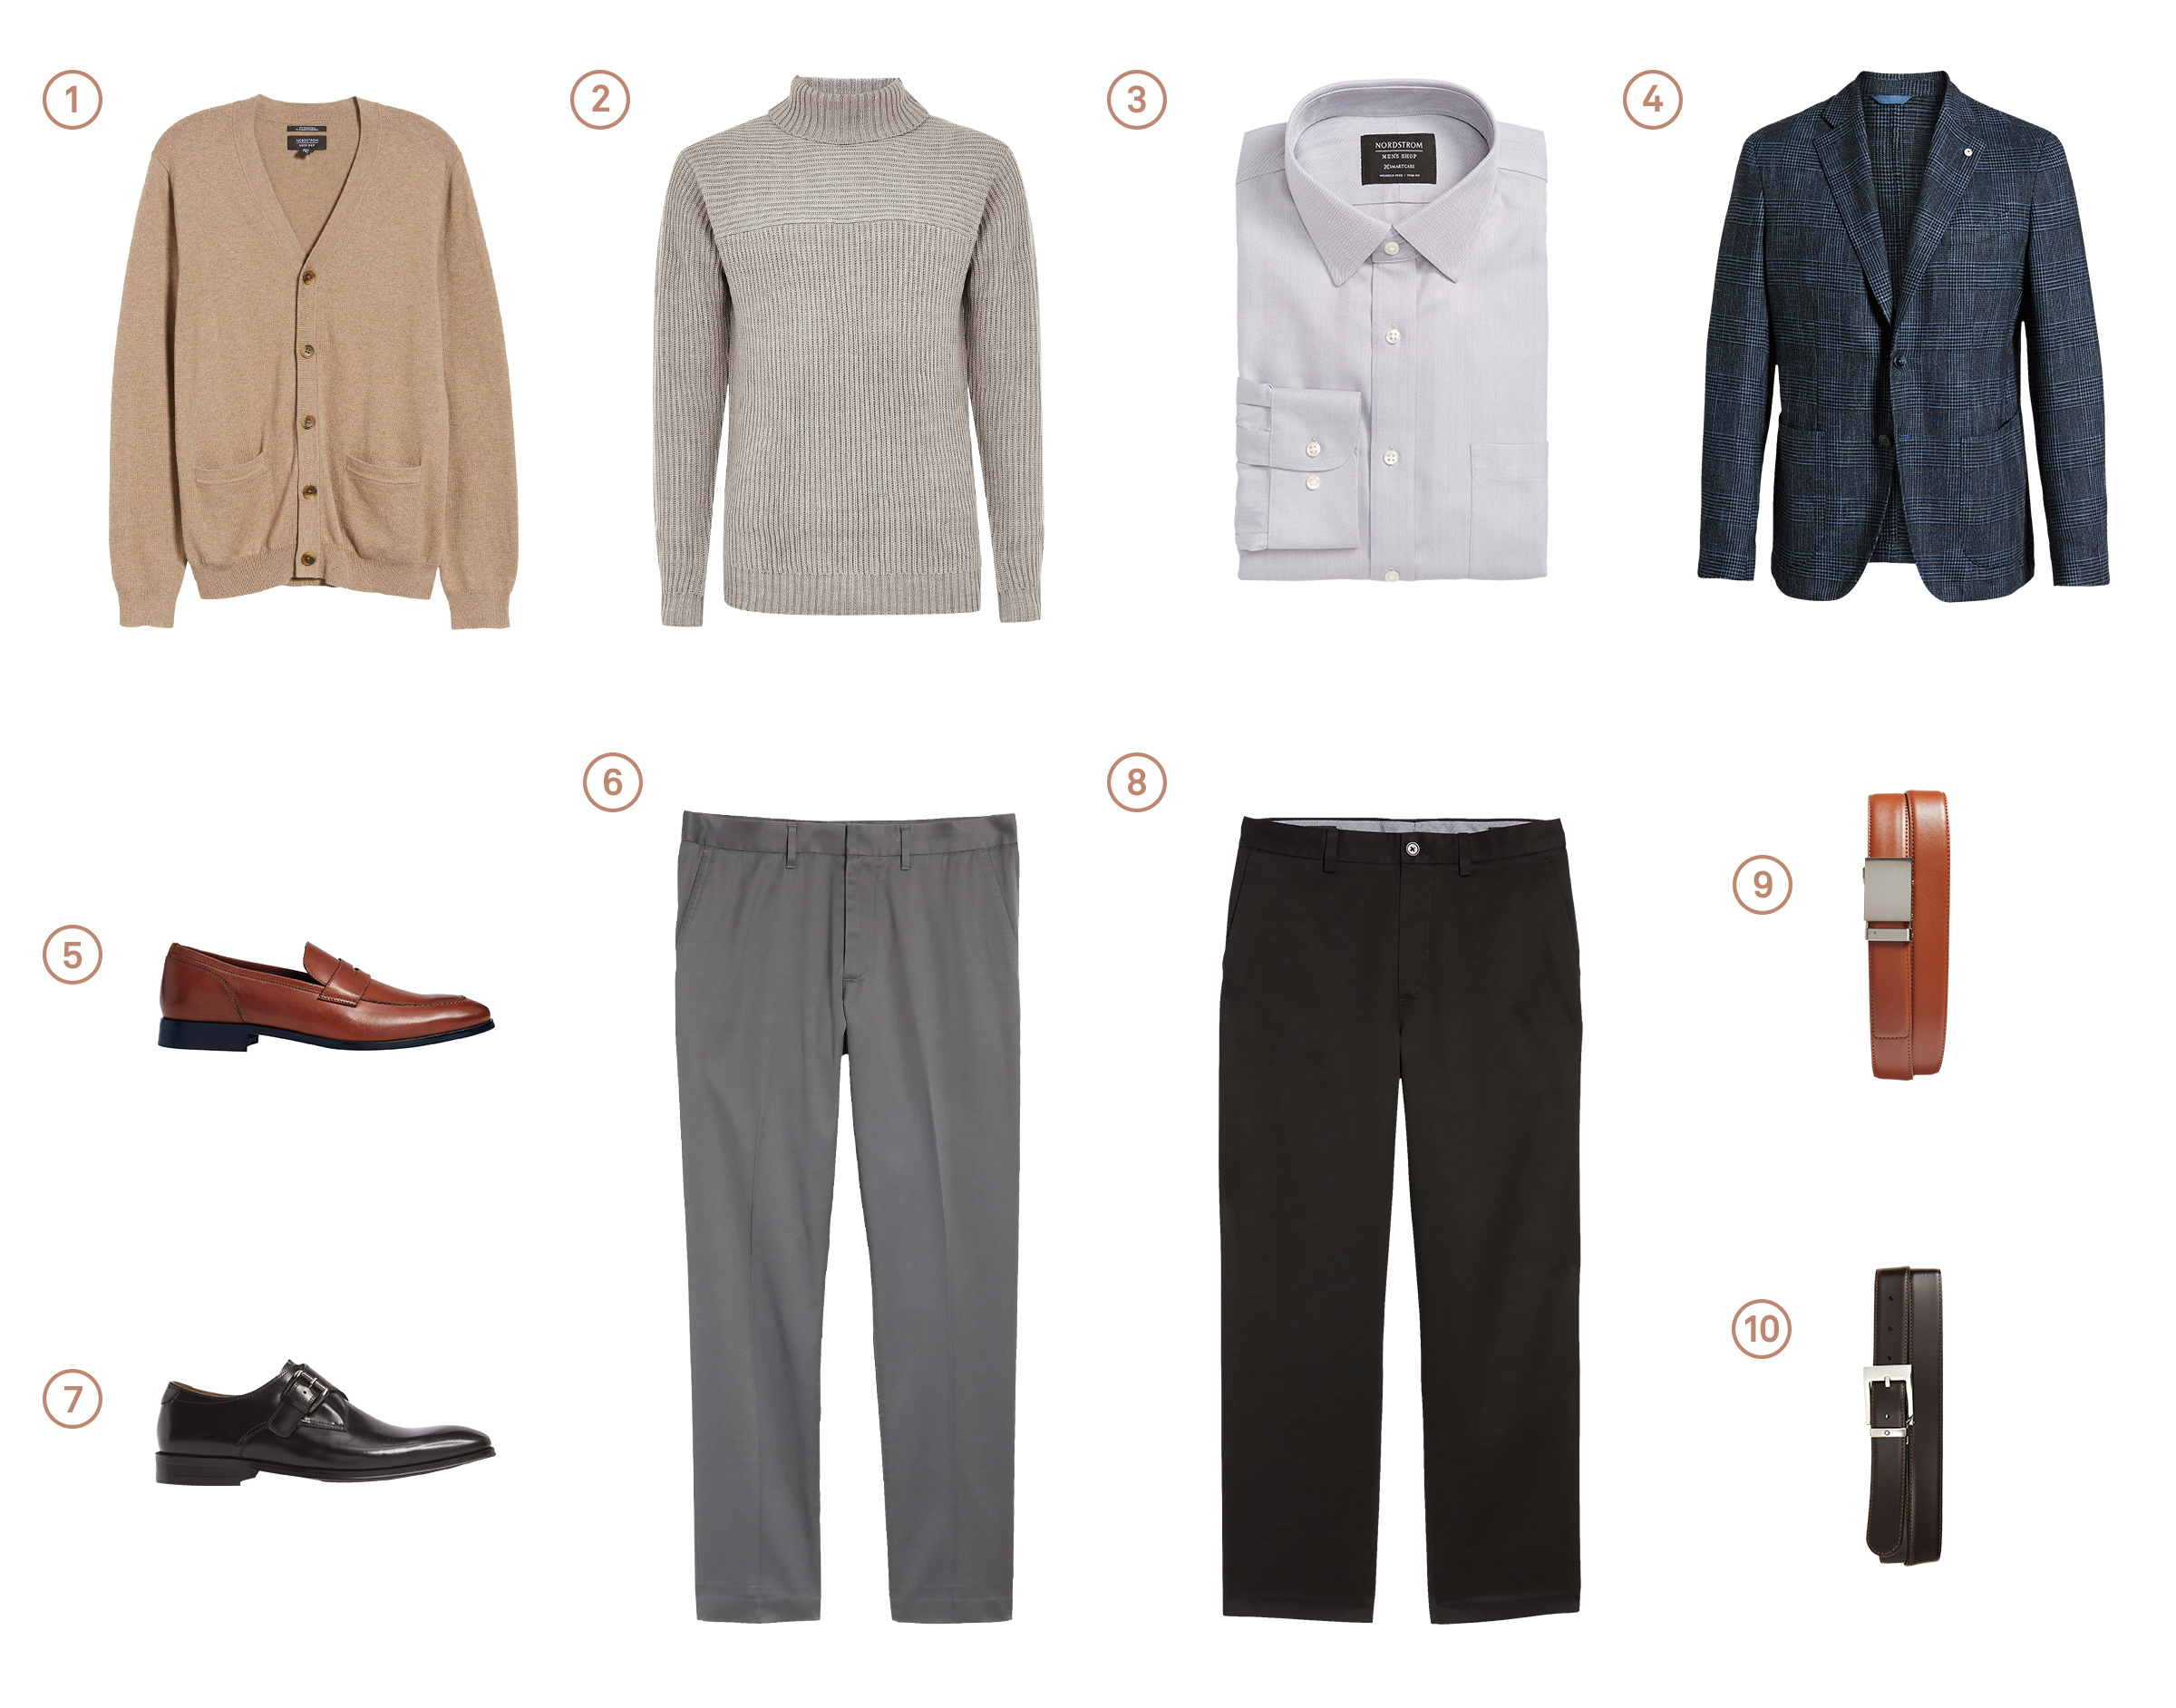 Men's capsule wardrobe with ten items of professional menswear.